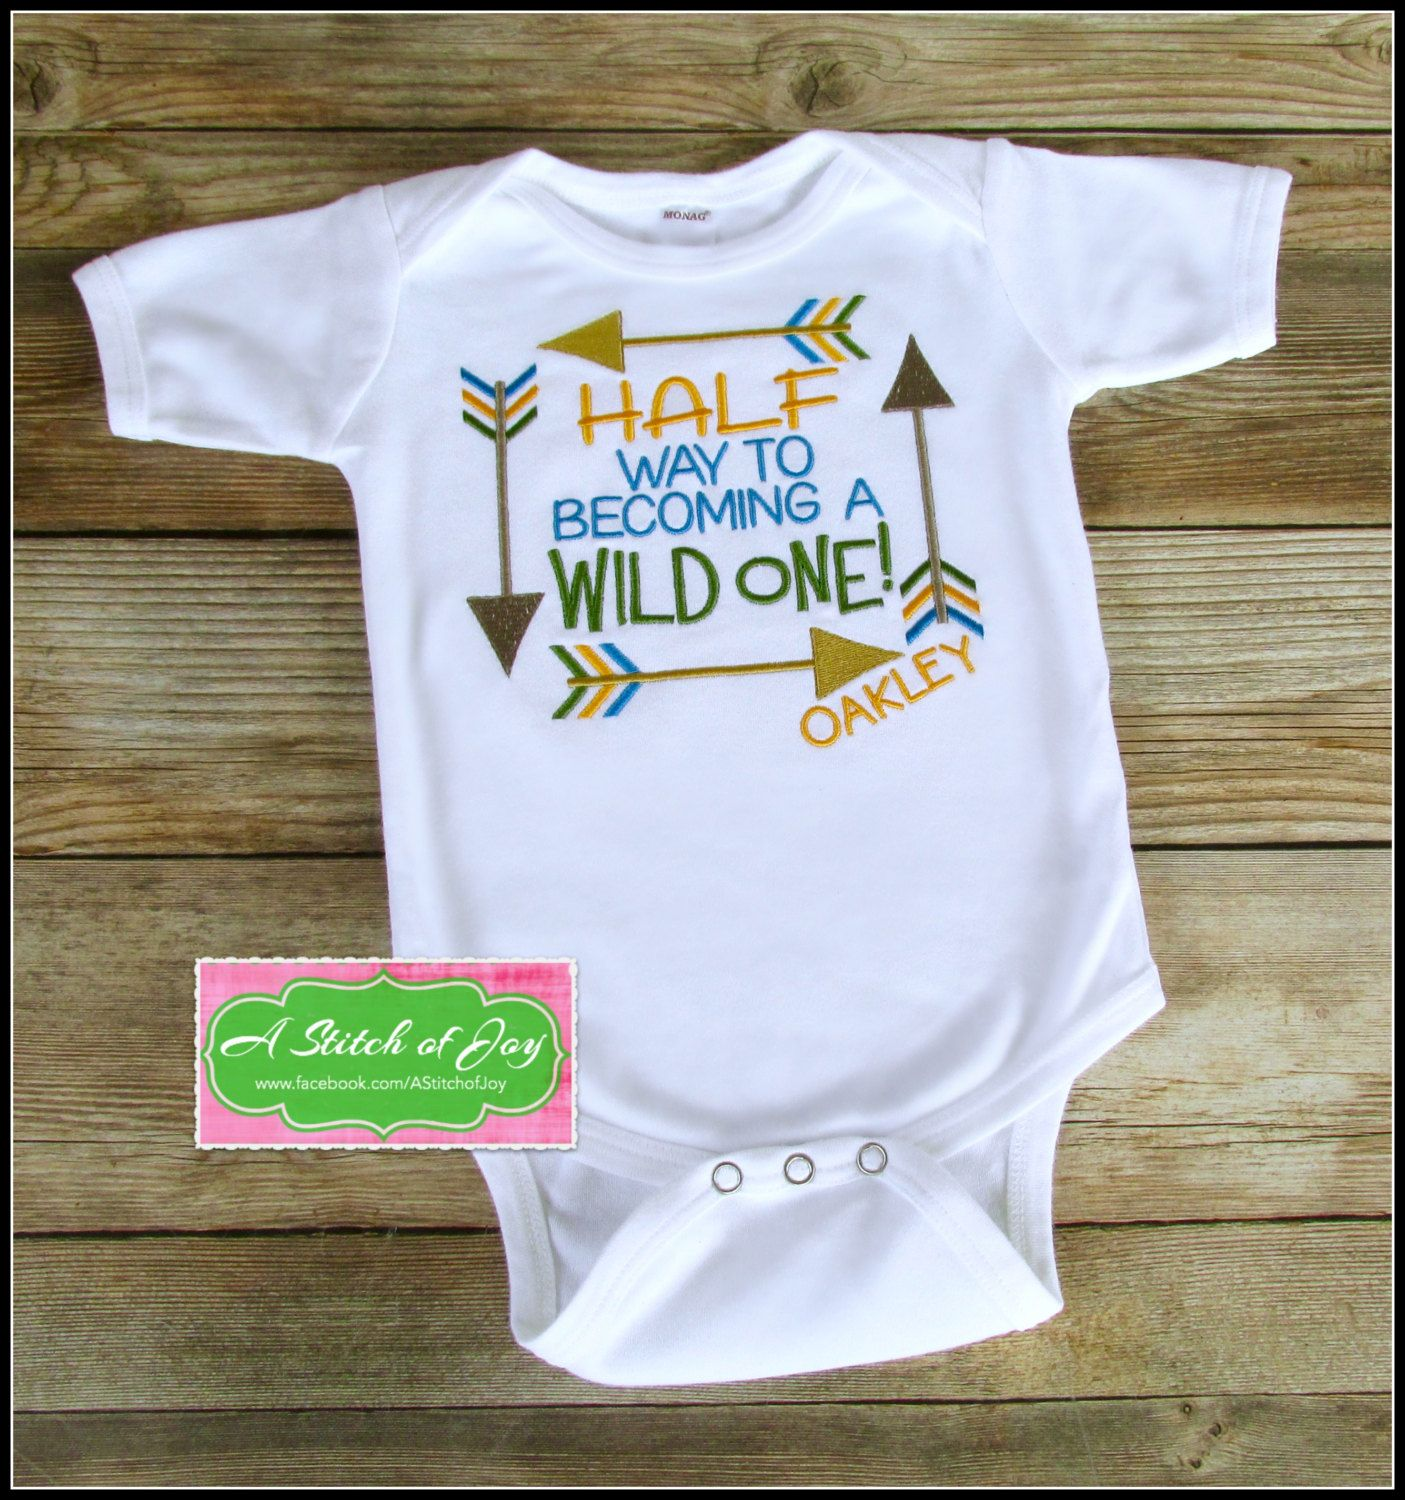 Half Birthday Shirt Bodysuit Boys 1 2 Way To Becoming A Wild One By AStitchofJoy On Etsy